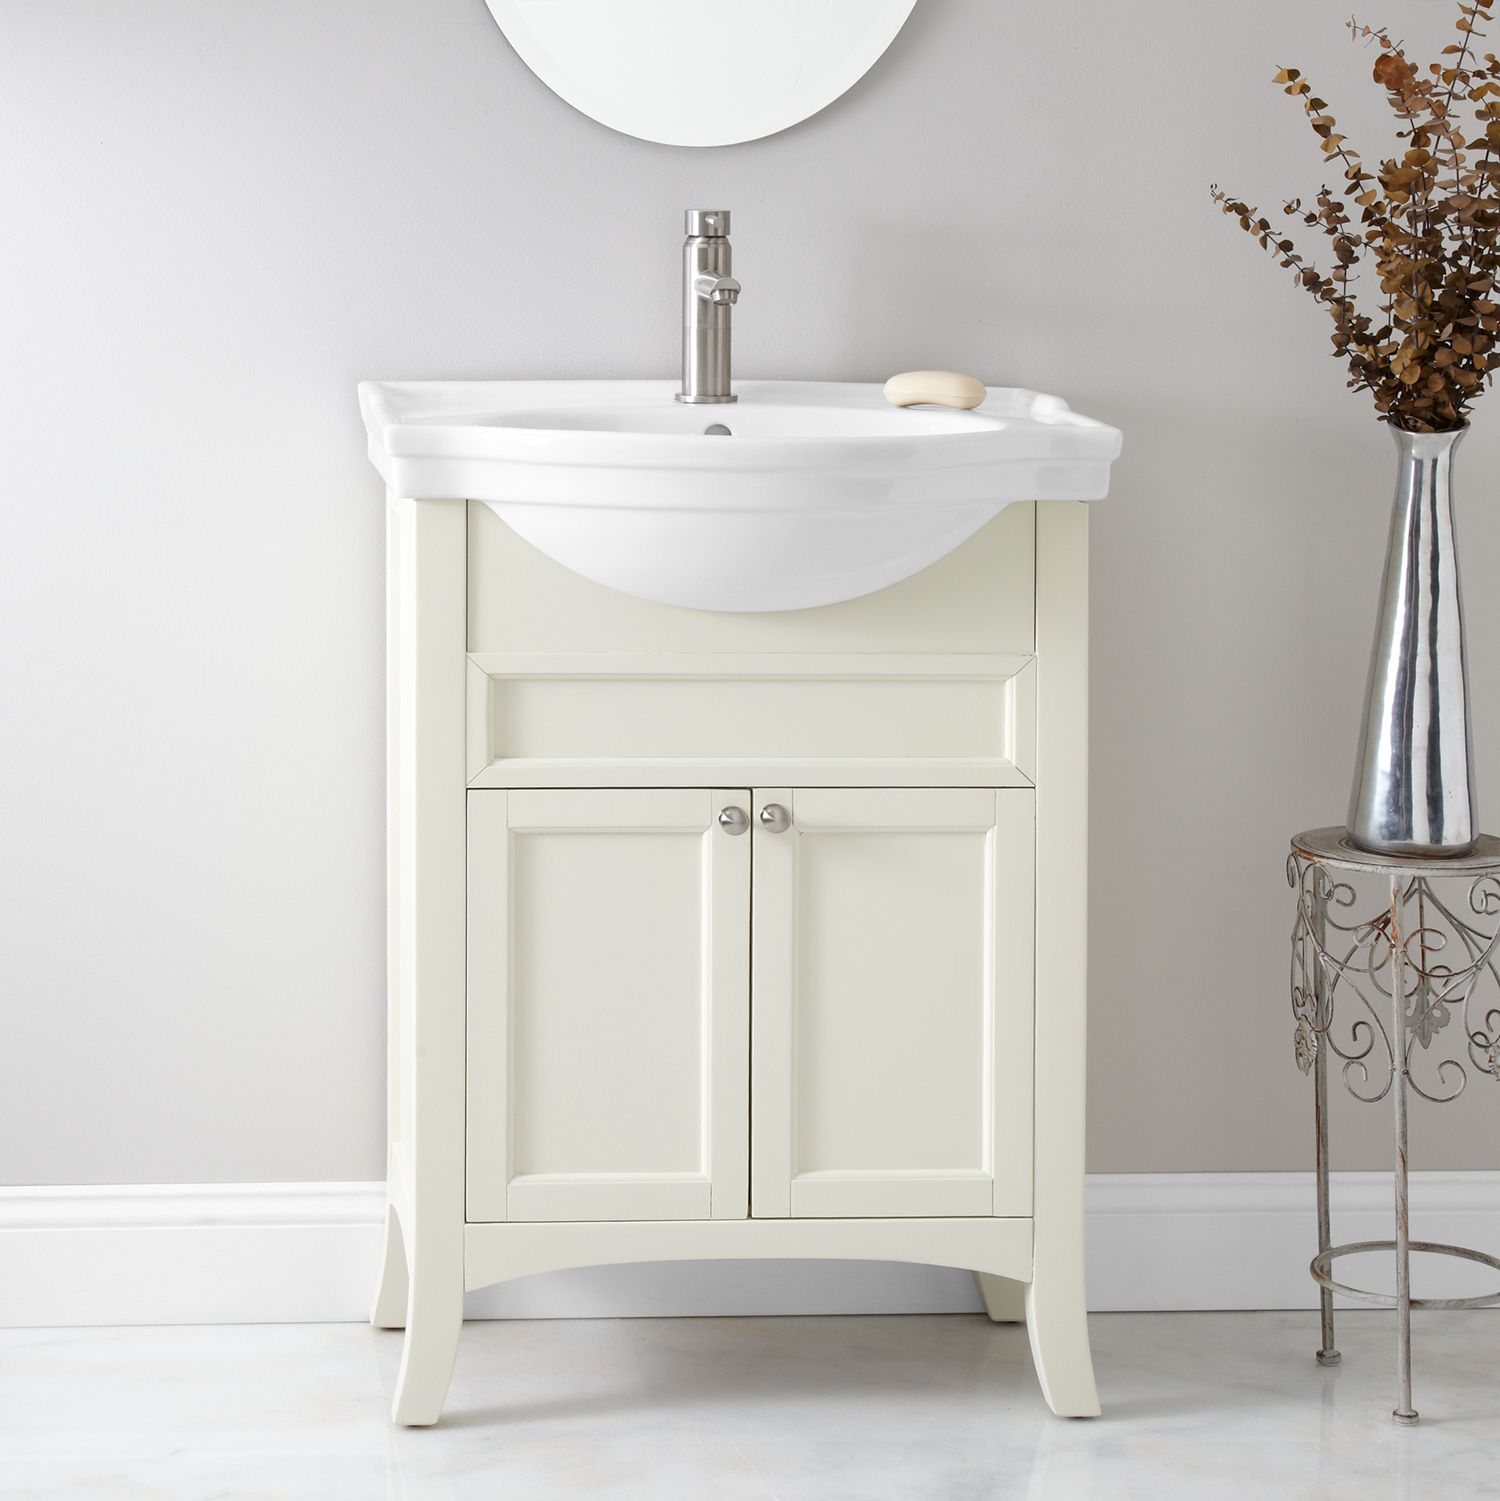 24 riggs vanity cabinet with semi recessed basin small - Lowes semi custom bathroom cabinets ...